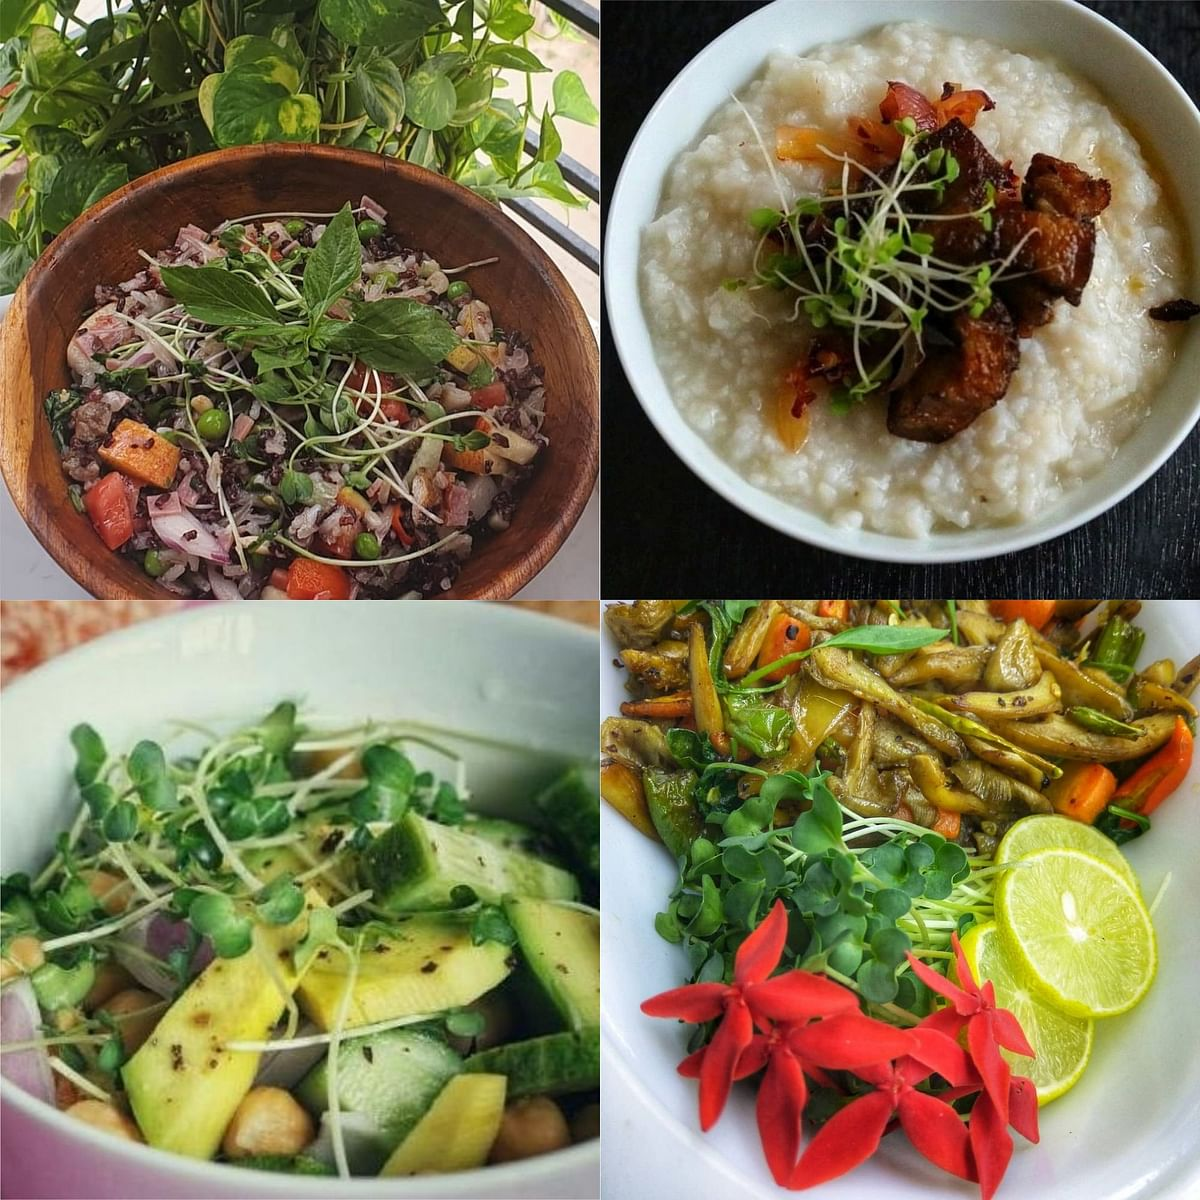 Usage of microgreens  in several dishes